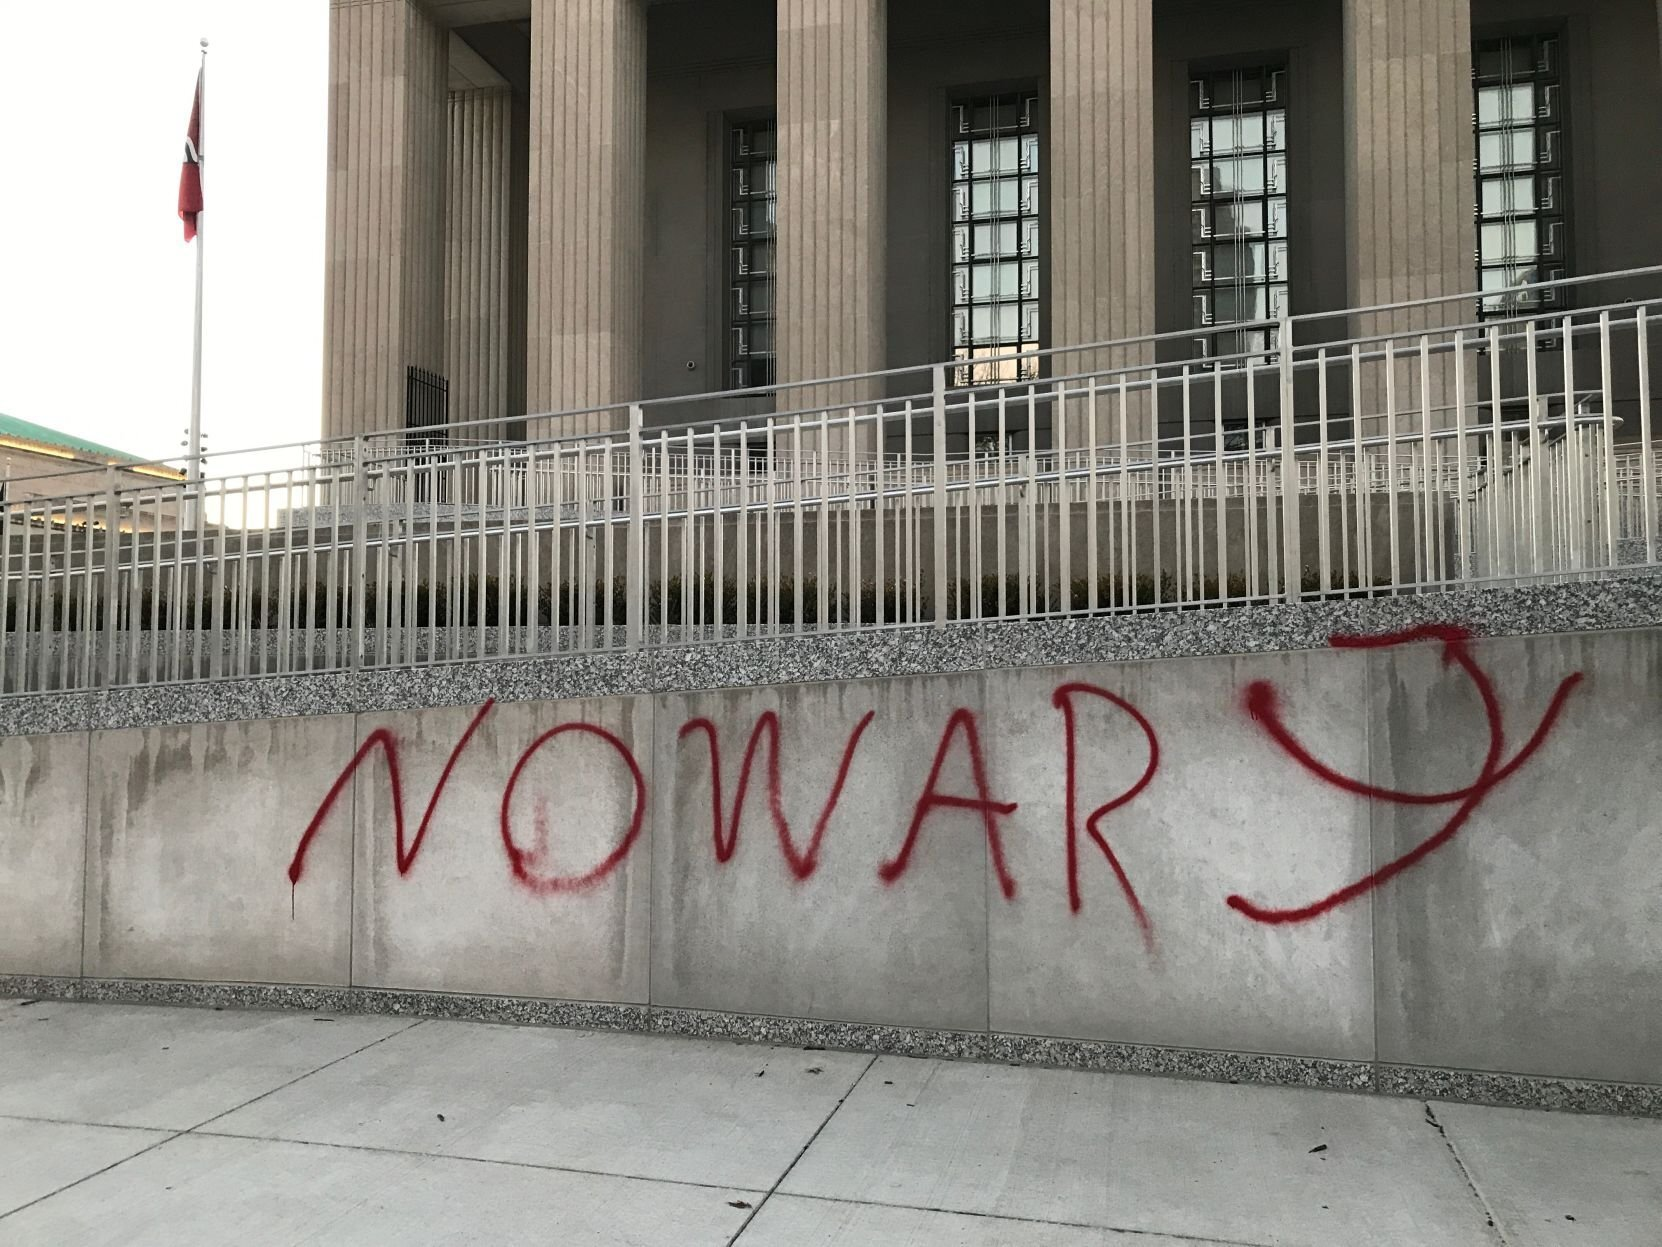 Photos: Soldiers Memorial in St. Louis vandalized with anti-wargraffiti